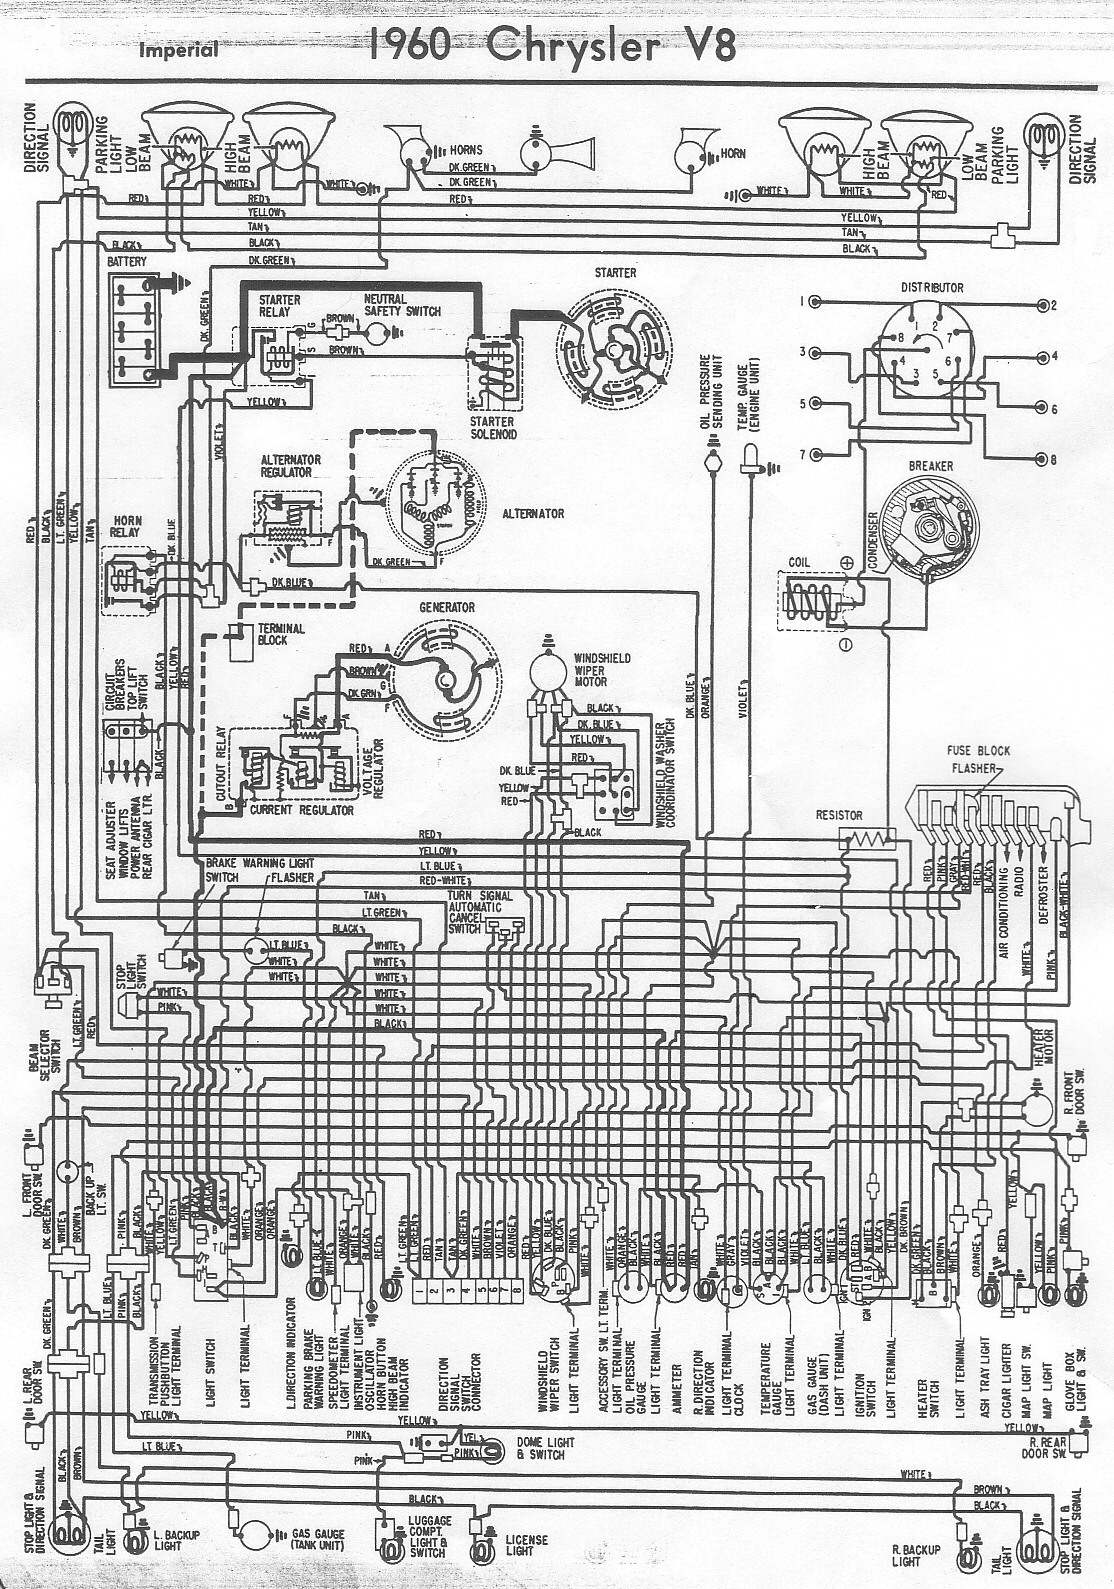 Chrysler Electronic Ignition Wiring Diagram 2008 Club Car Precedent Battery Free Diagrams Transmission